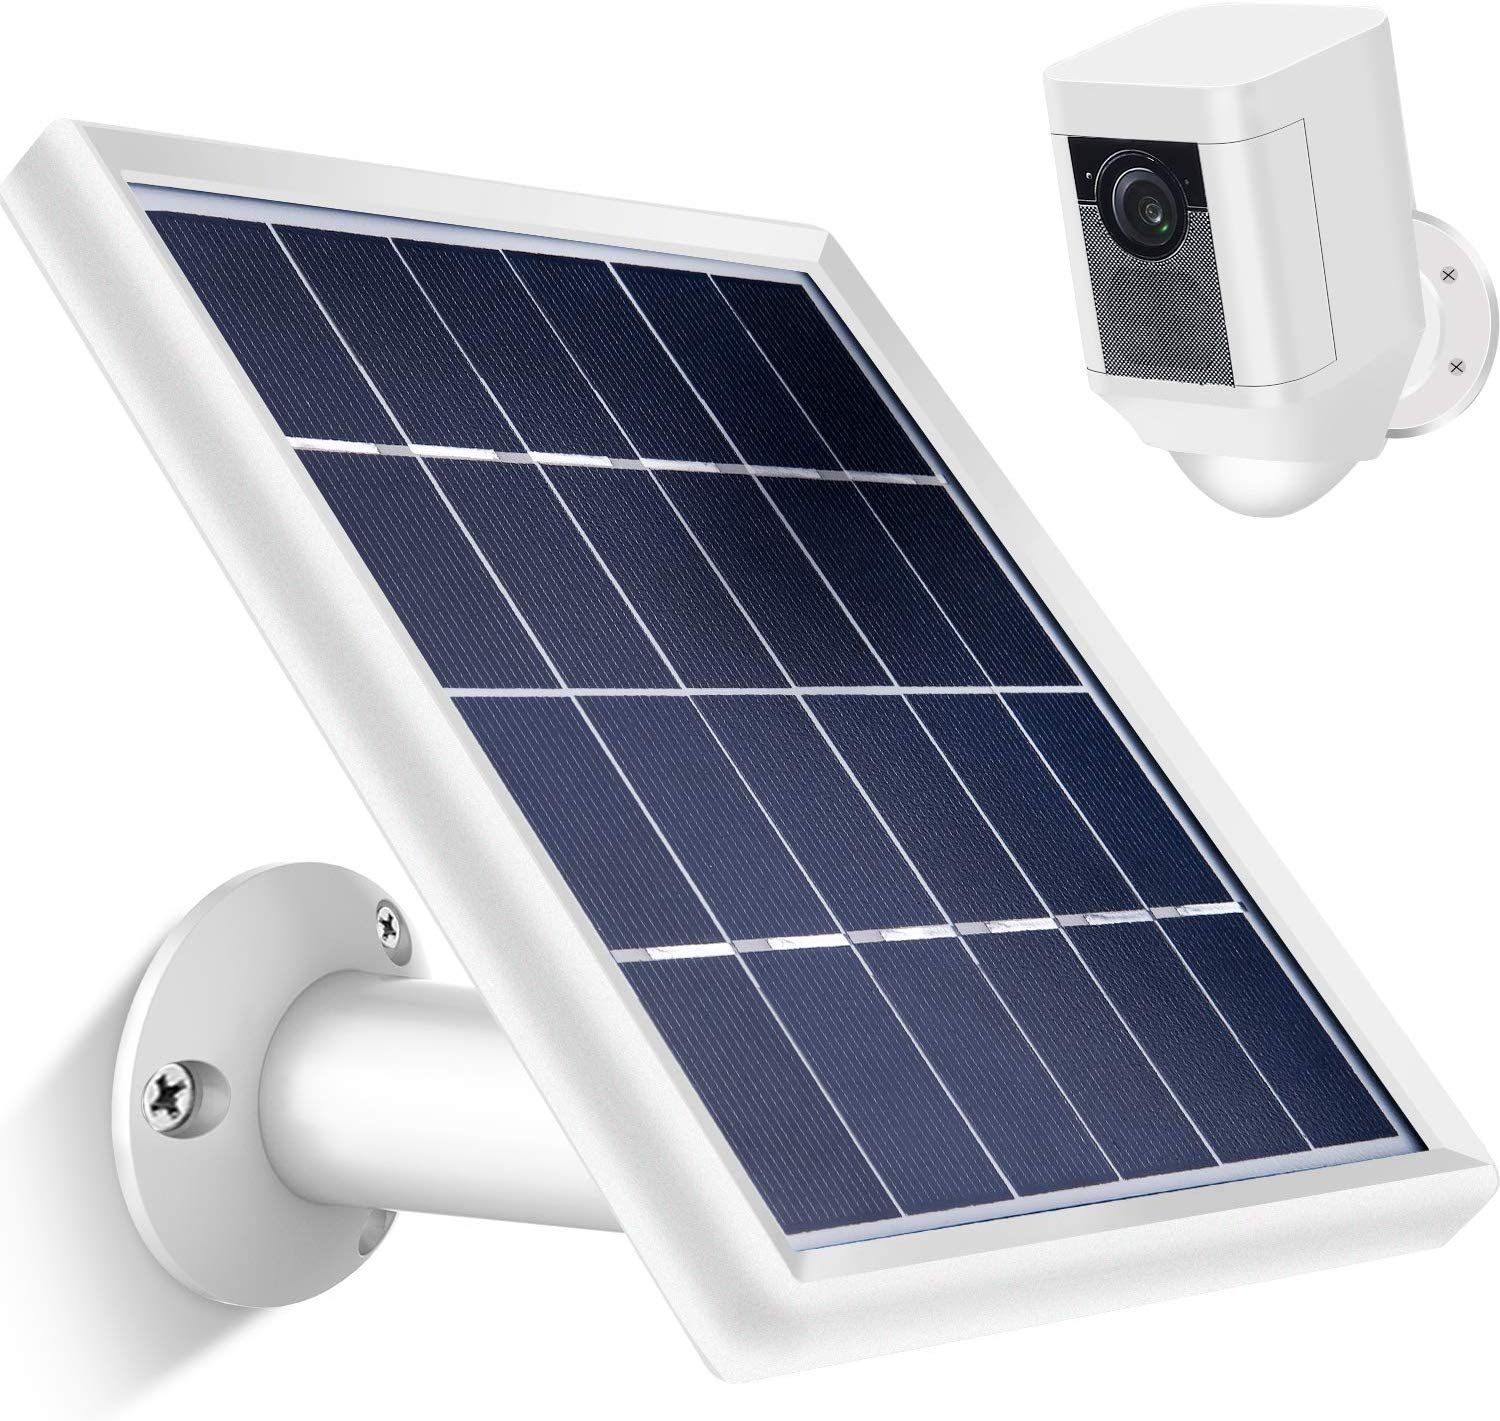 Solar Panel For Ring Spotlight Cam With Security Wall Mount Solar Panels Solar Panel Charger Portable Solar Panels